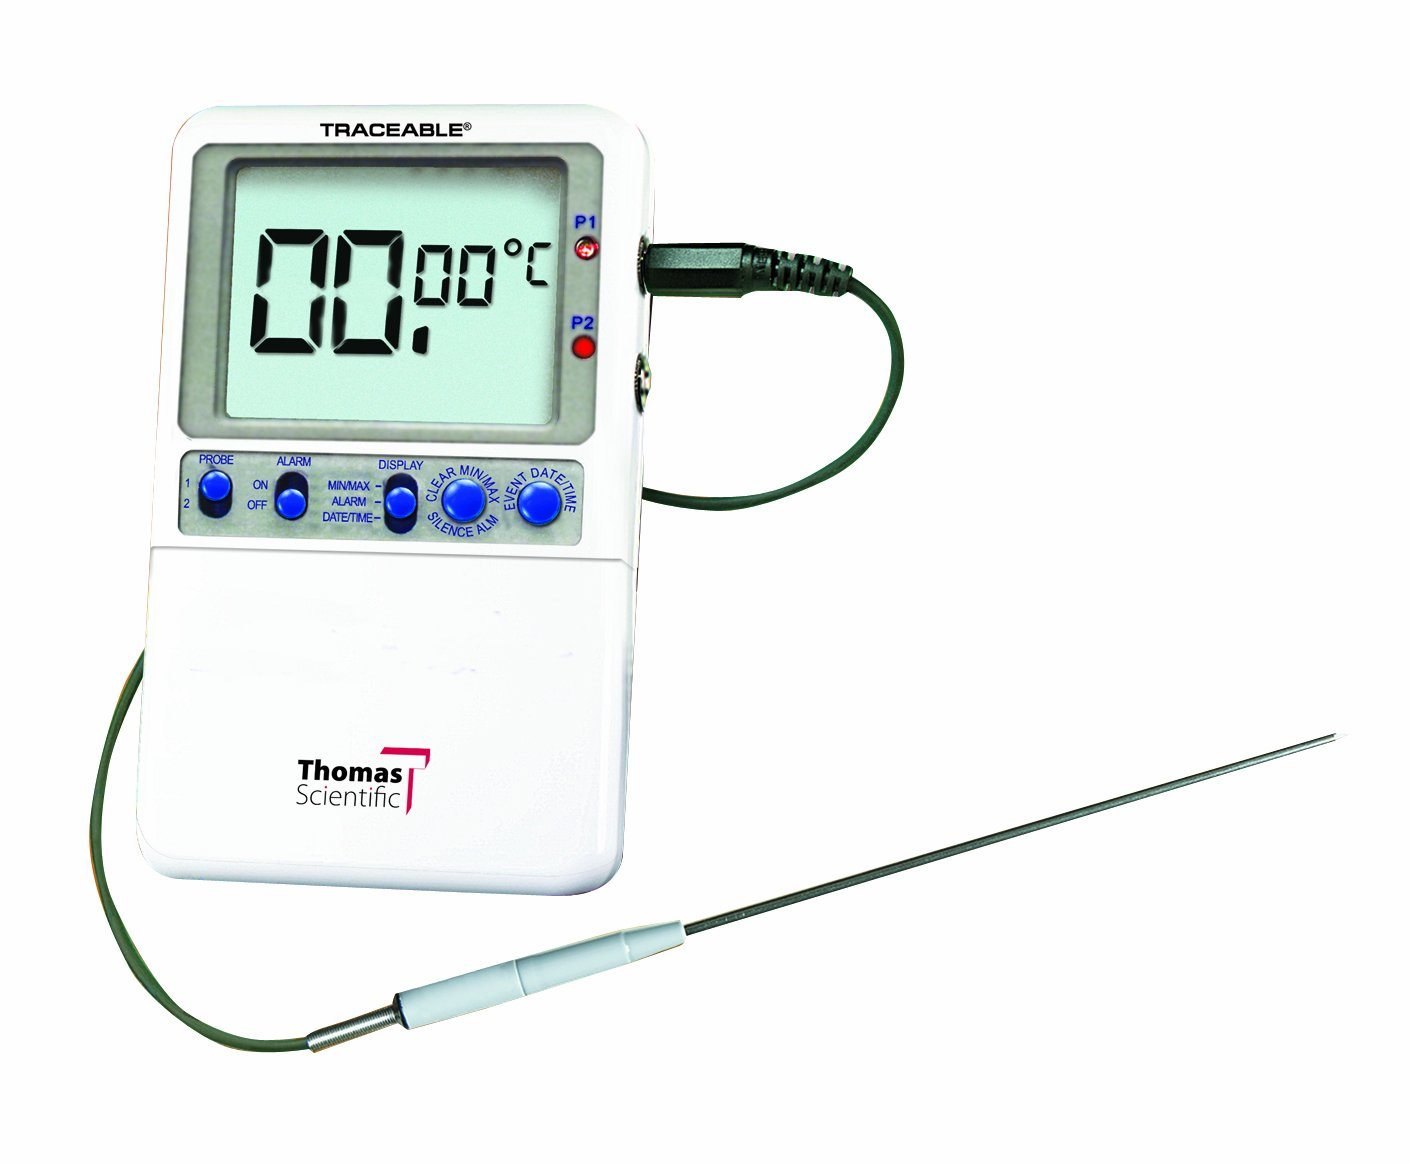 Thomas Traceable Extreme-Accuracy Thermometer, 6.25'' Stem, 35 to 39 degree C